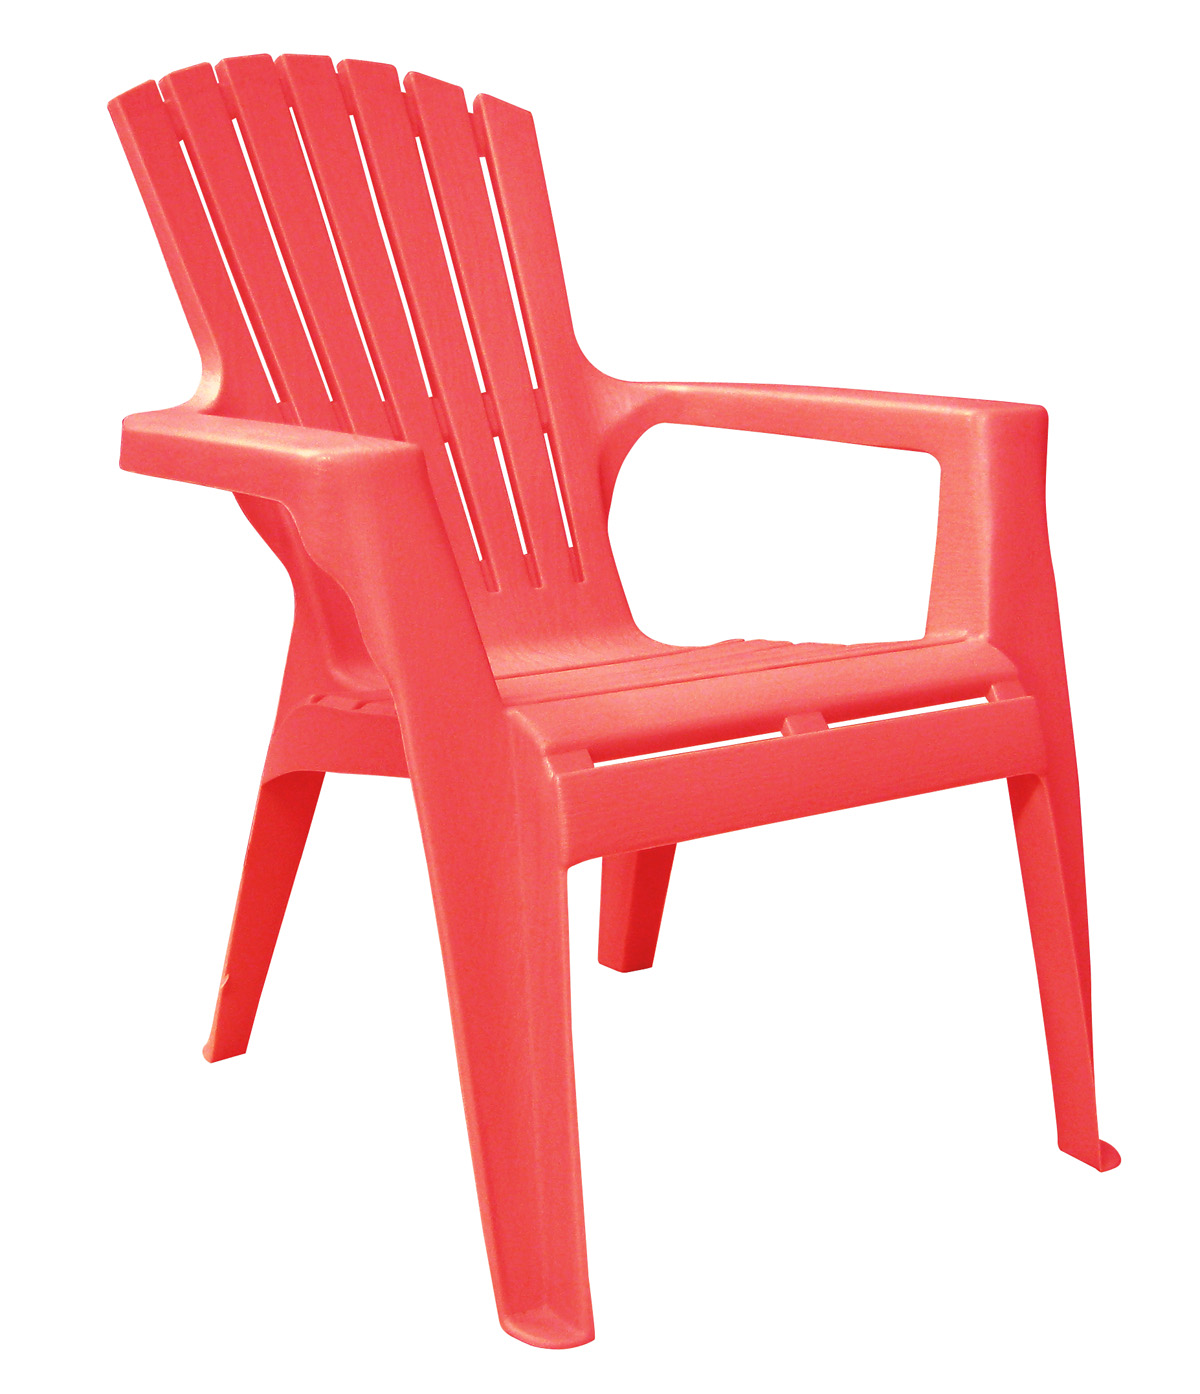 Adams Manufacturing Kids' Adirondack Chair Cherry Red by Adams Manufacturing